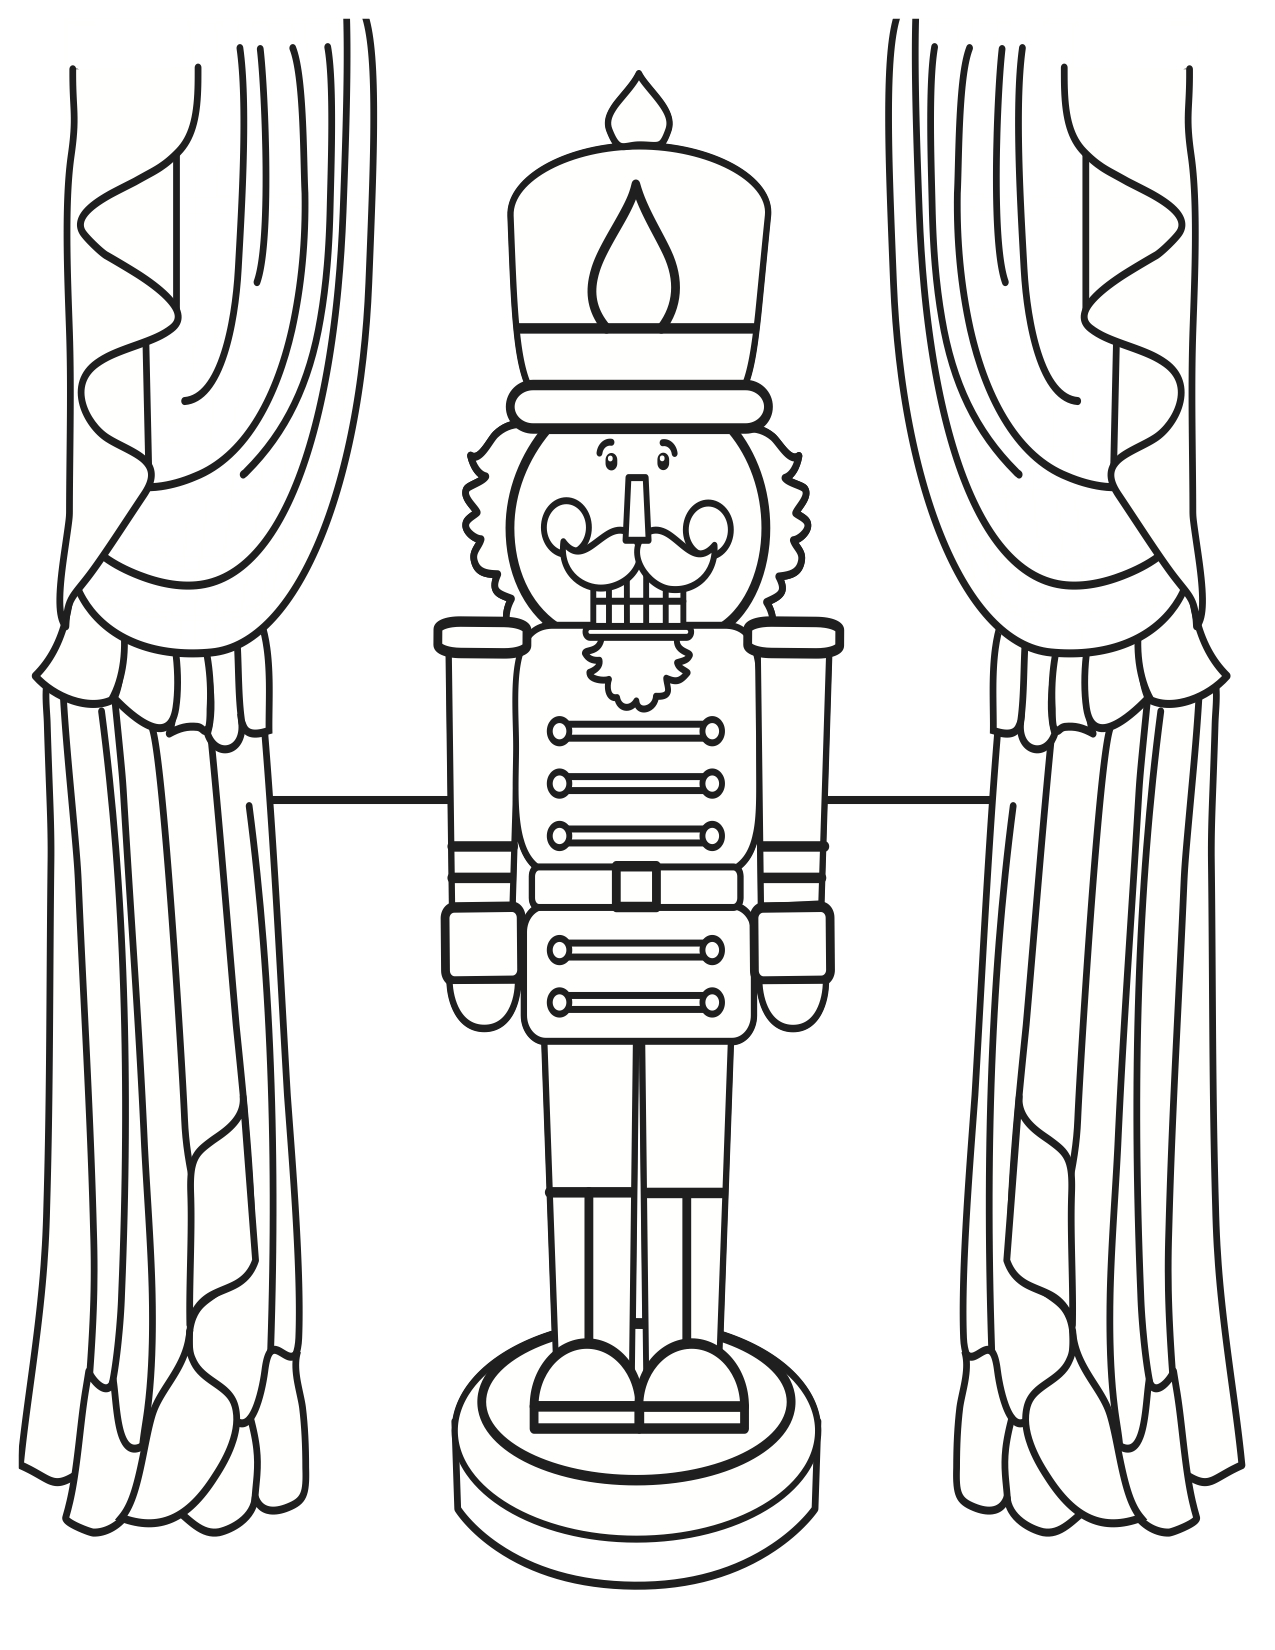 Walnut Coloring Page At Getcolorings